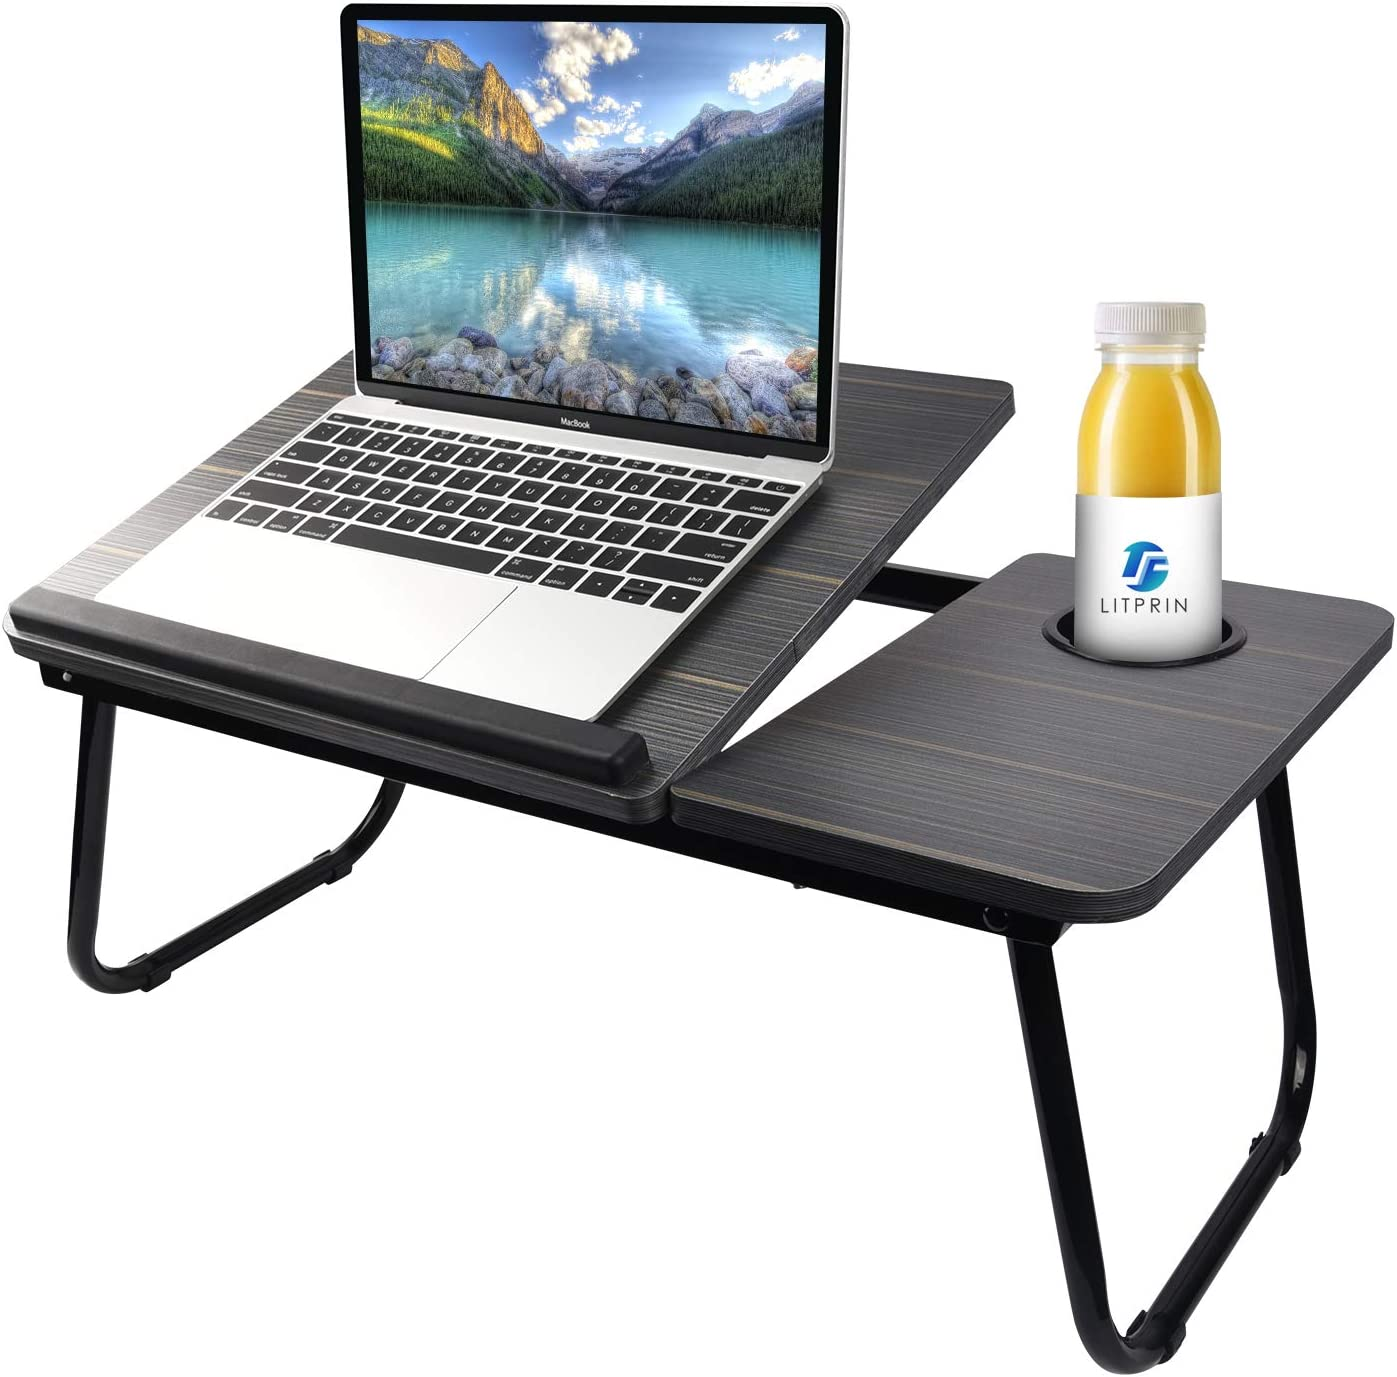 Laptop Desk for Bed/Couch/Sofa,Adjustable Laptop Stand, Portable Table for Laptop,Folding Computer Tray